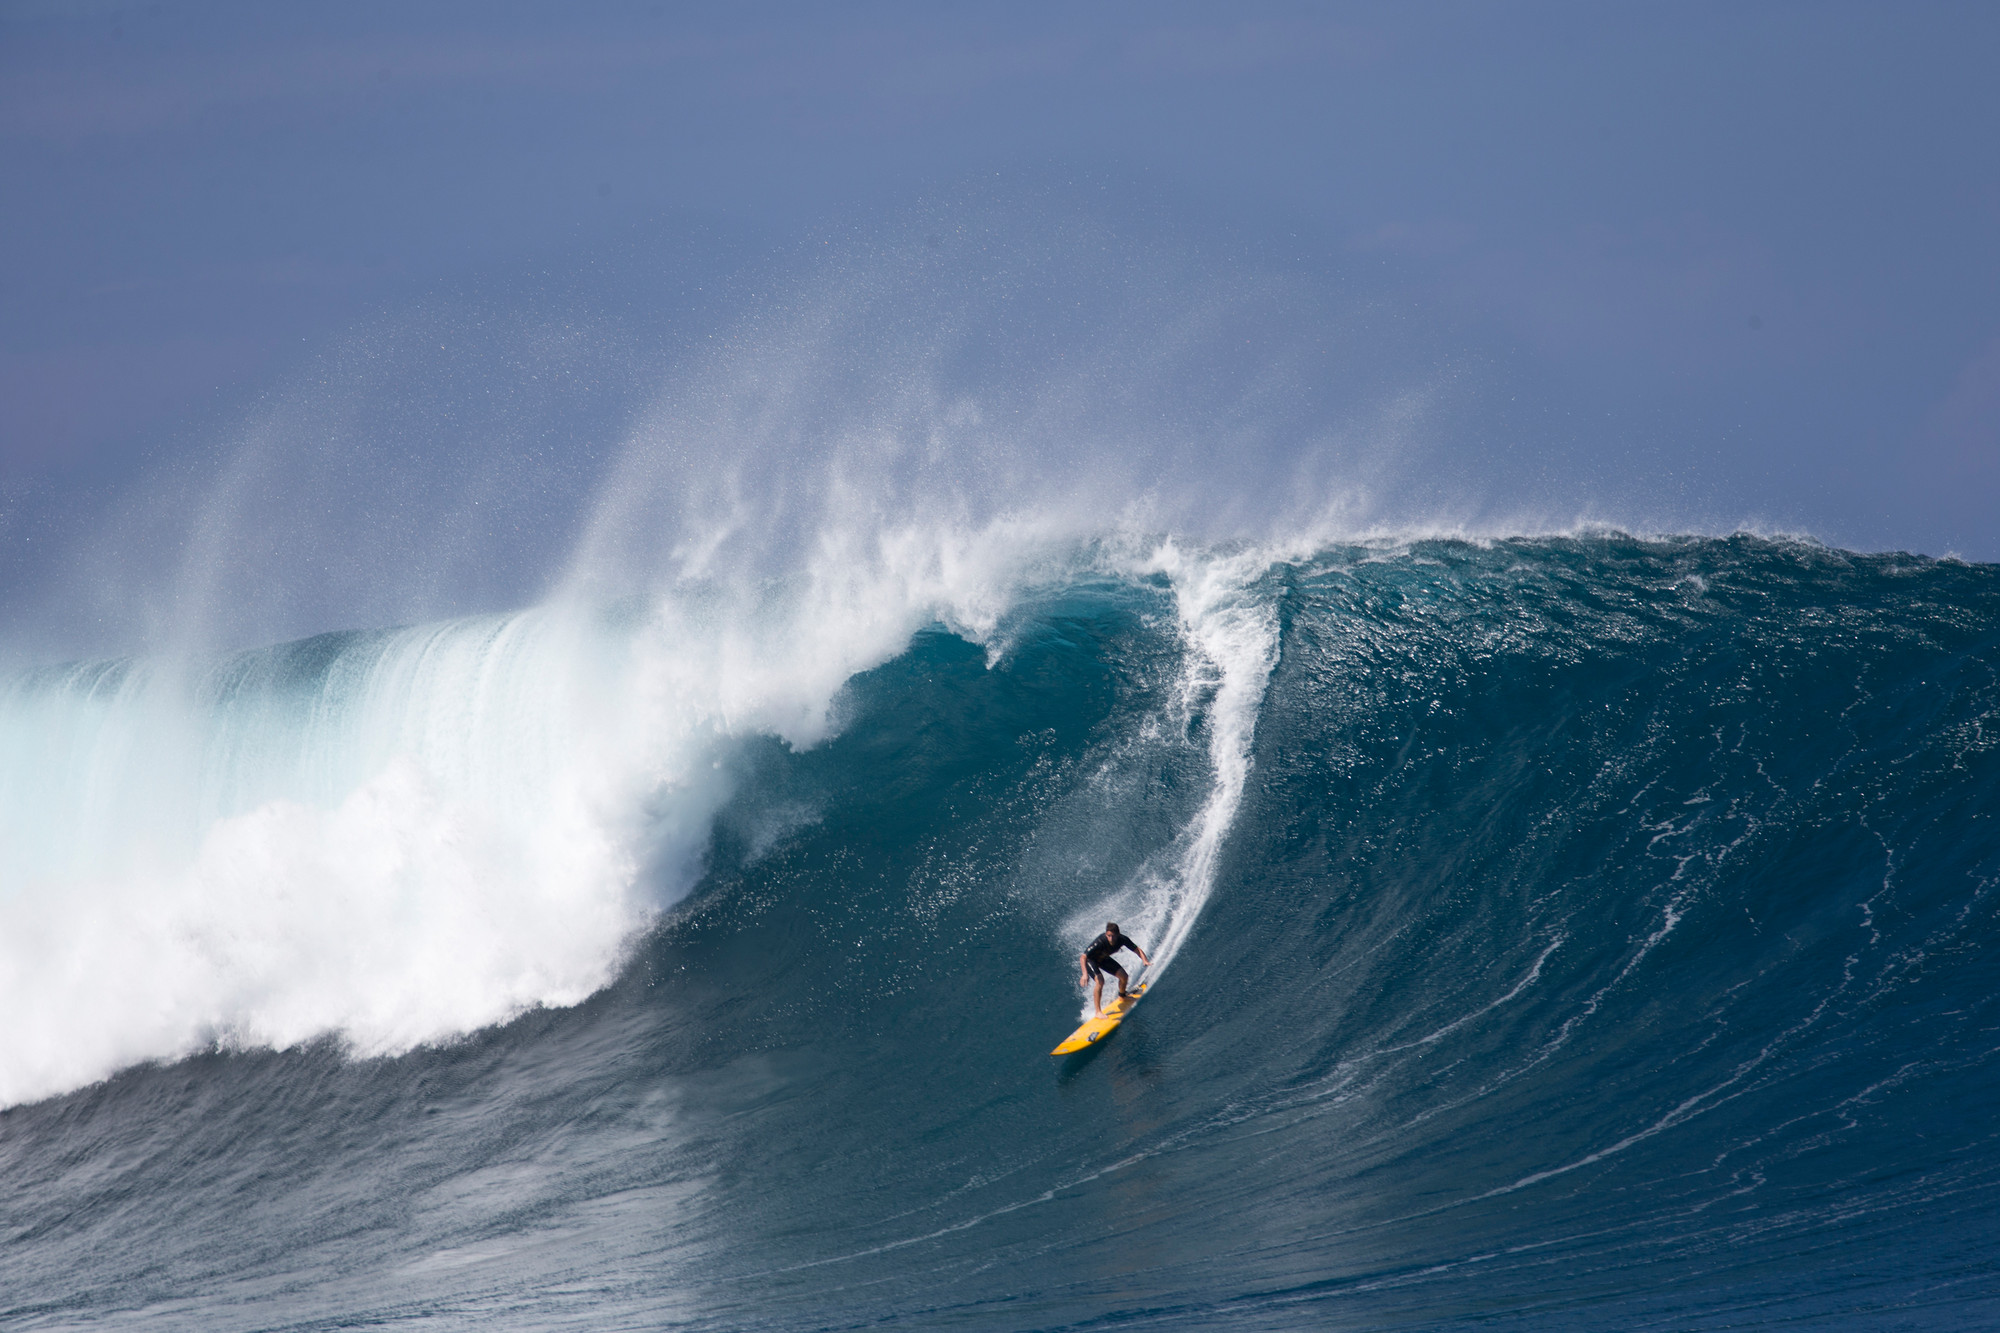 Professional big-wave surfer Will Skudin, of Long Beach, rode the massive surf break known as Jaws off Maui on Monday, where the swells can exceed 60 feet. Skudin was recently named the 2013 Surfer of the Year by a prominent surfing magazine, the first New Yorker to earn the distinction.